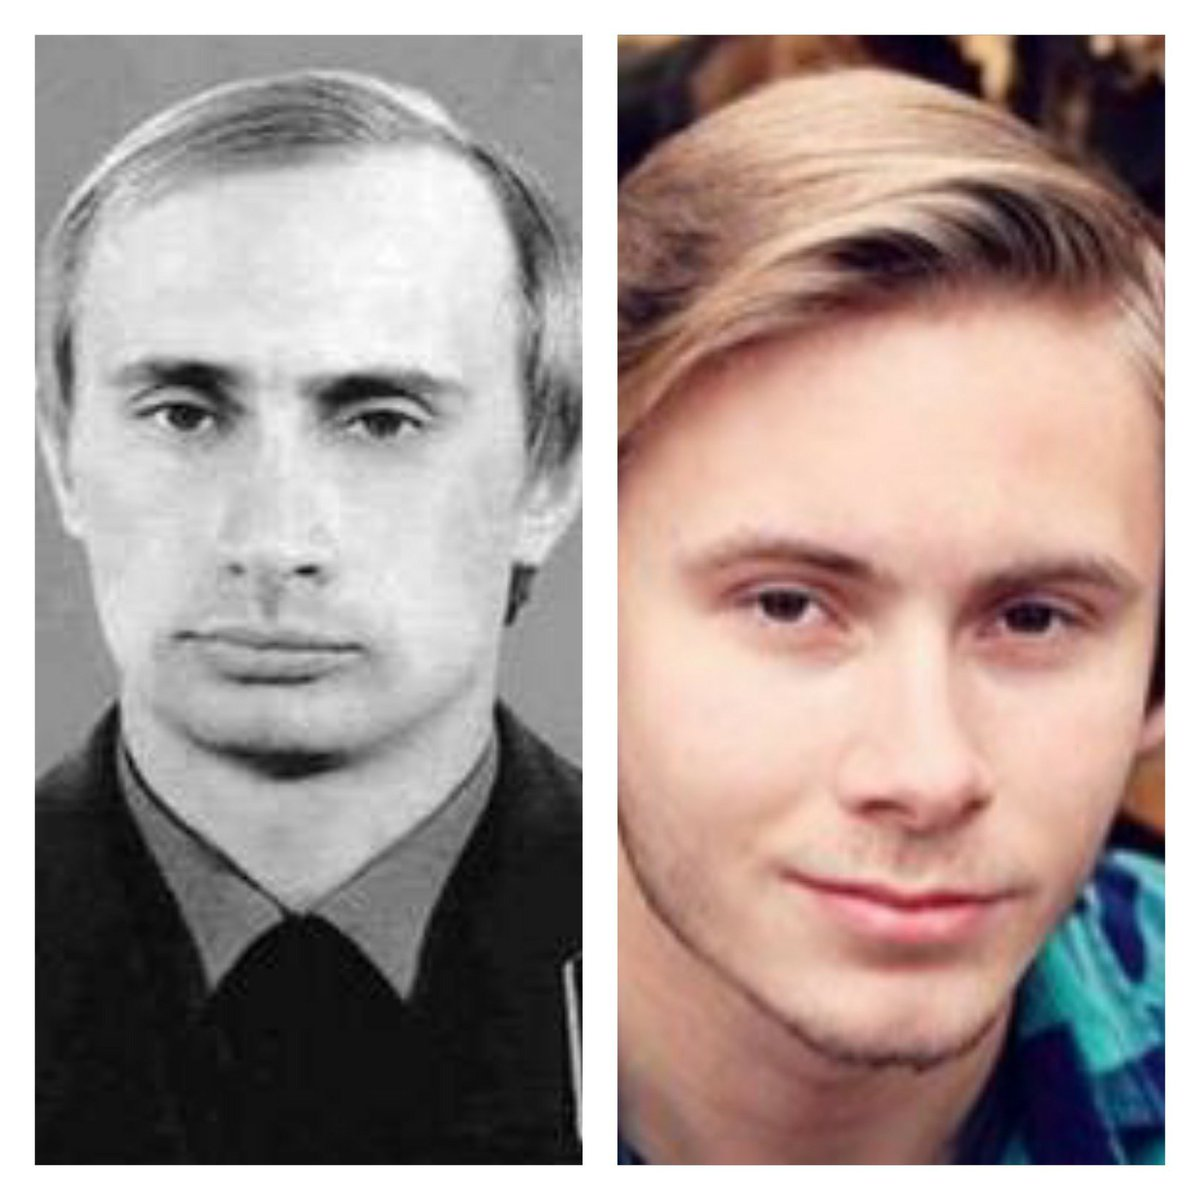 #throwback to when @ConnorHaglin was the head of the KGB